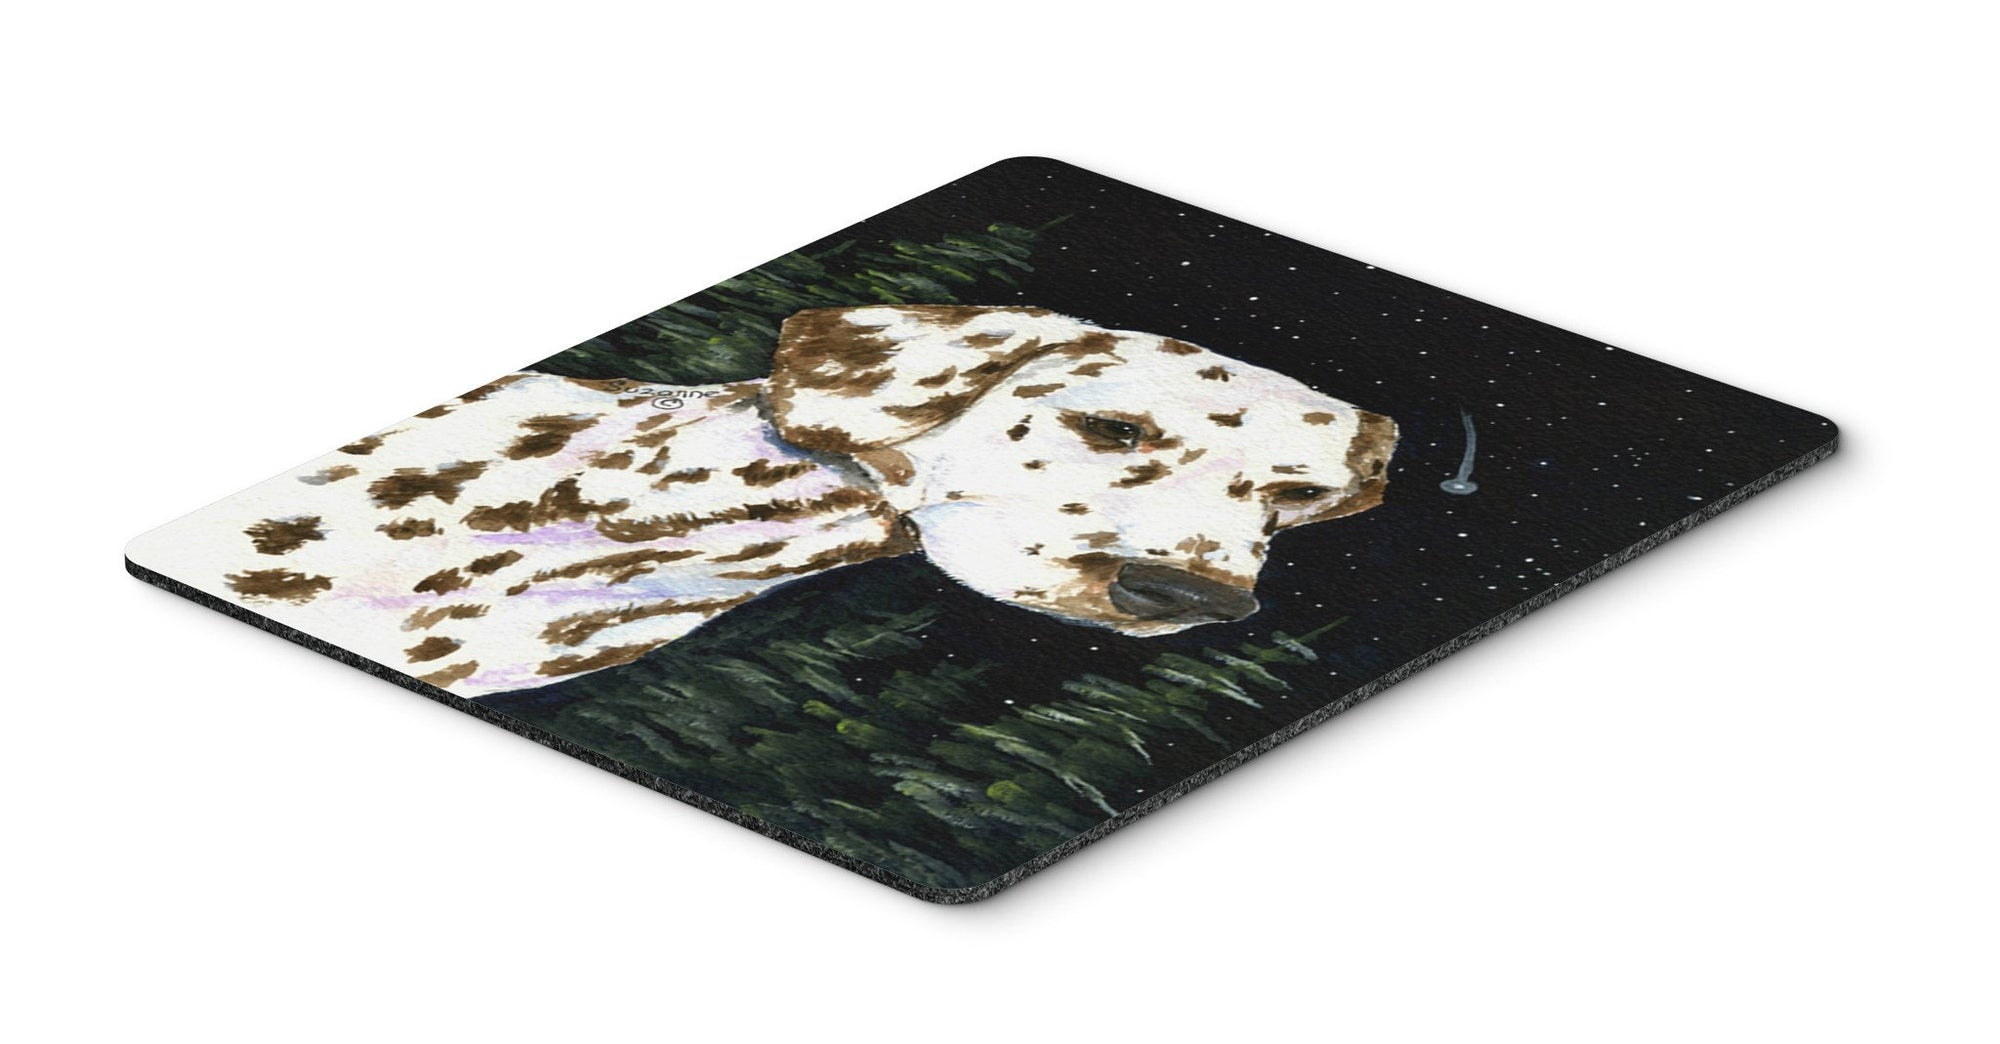 Starry Night Dalmatian Mouse Pad / Hot Pad / Trivet by Caroline's Treasures